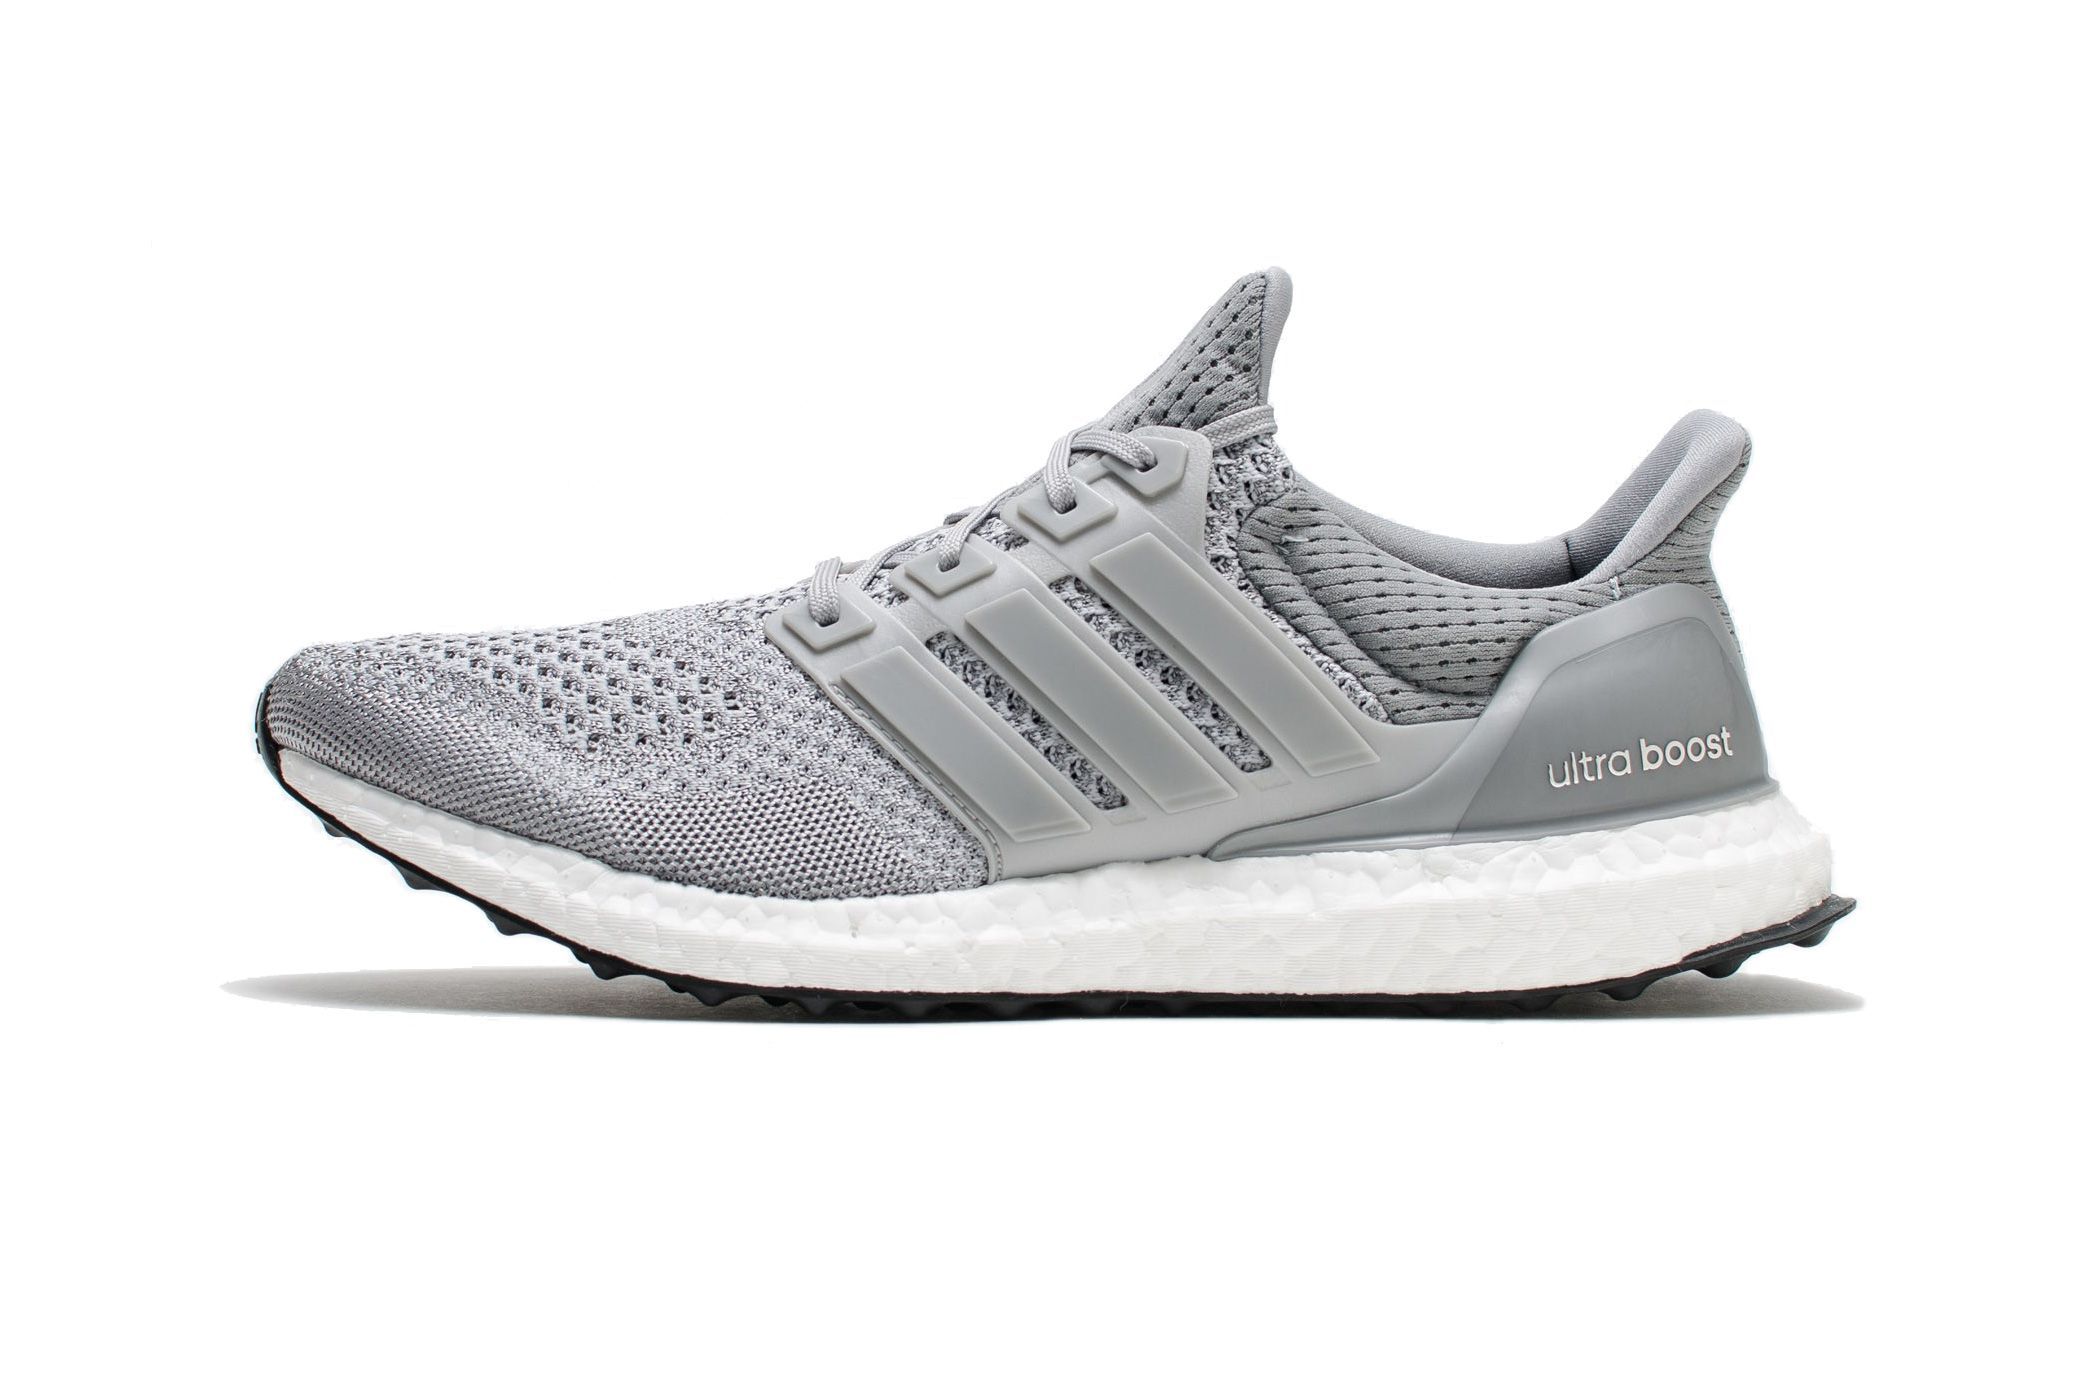 Best 25+ Adidas ultra boost silver ideas on Pinterest | Adidas boost black,  Sneaker boots and Yeezy shop